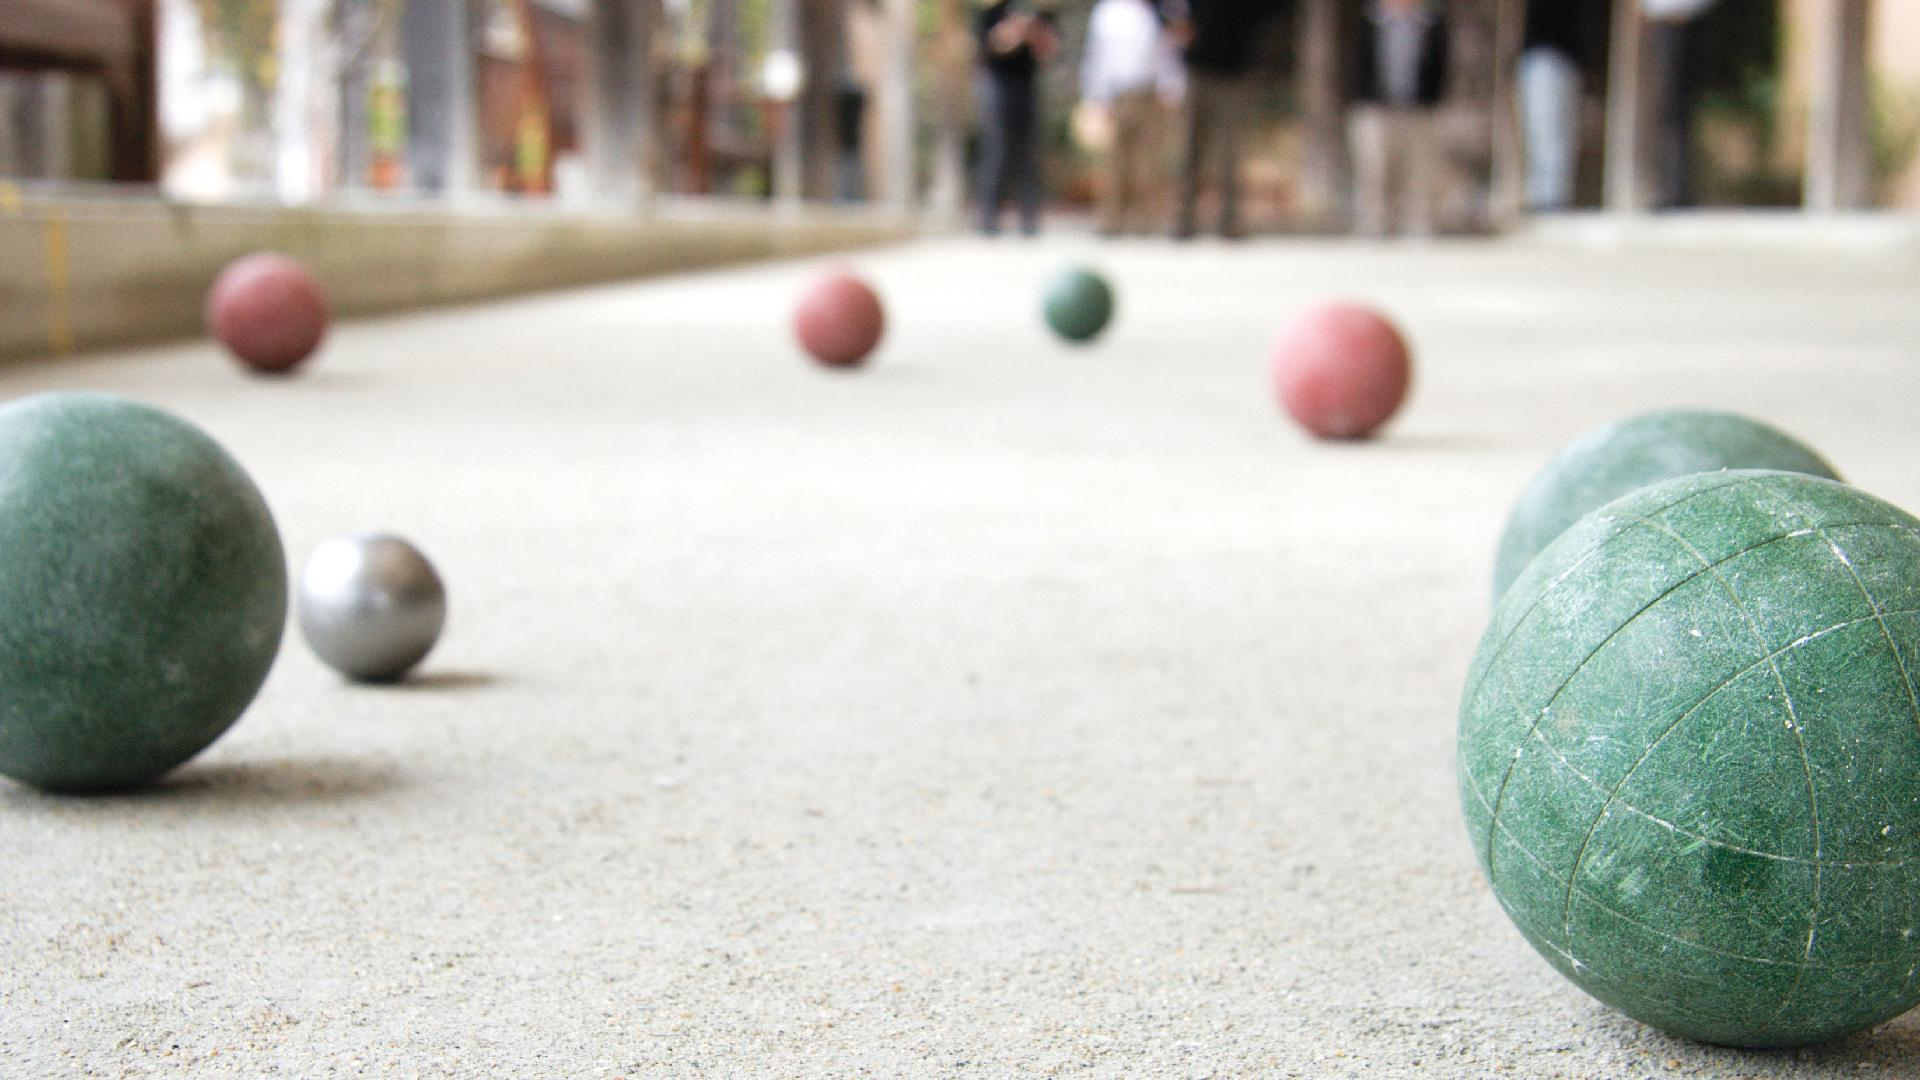 Community bocce courts for residents to enjoy